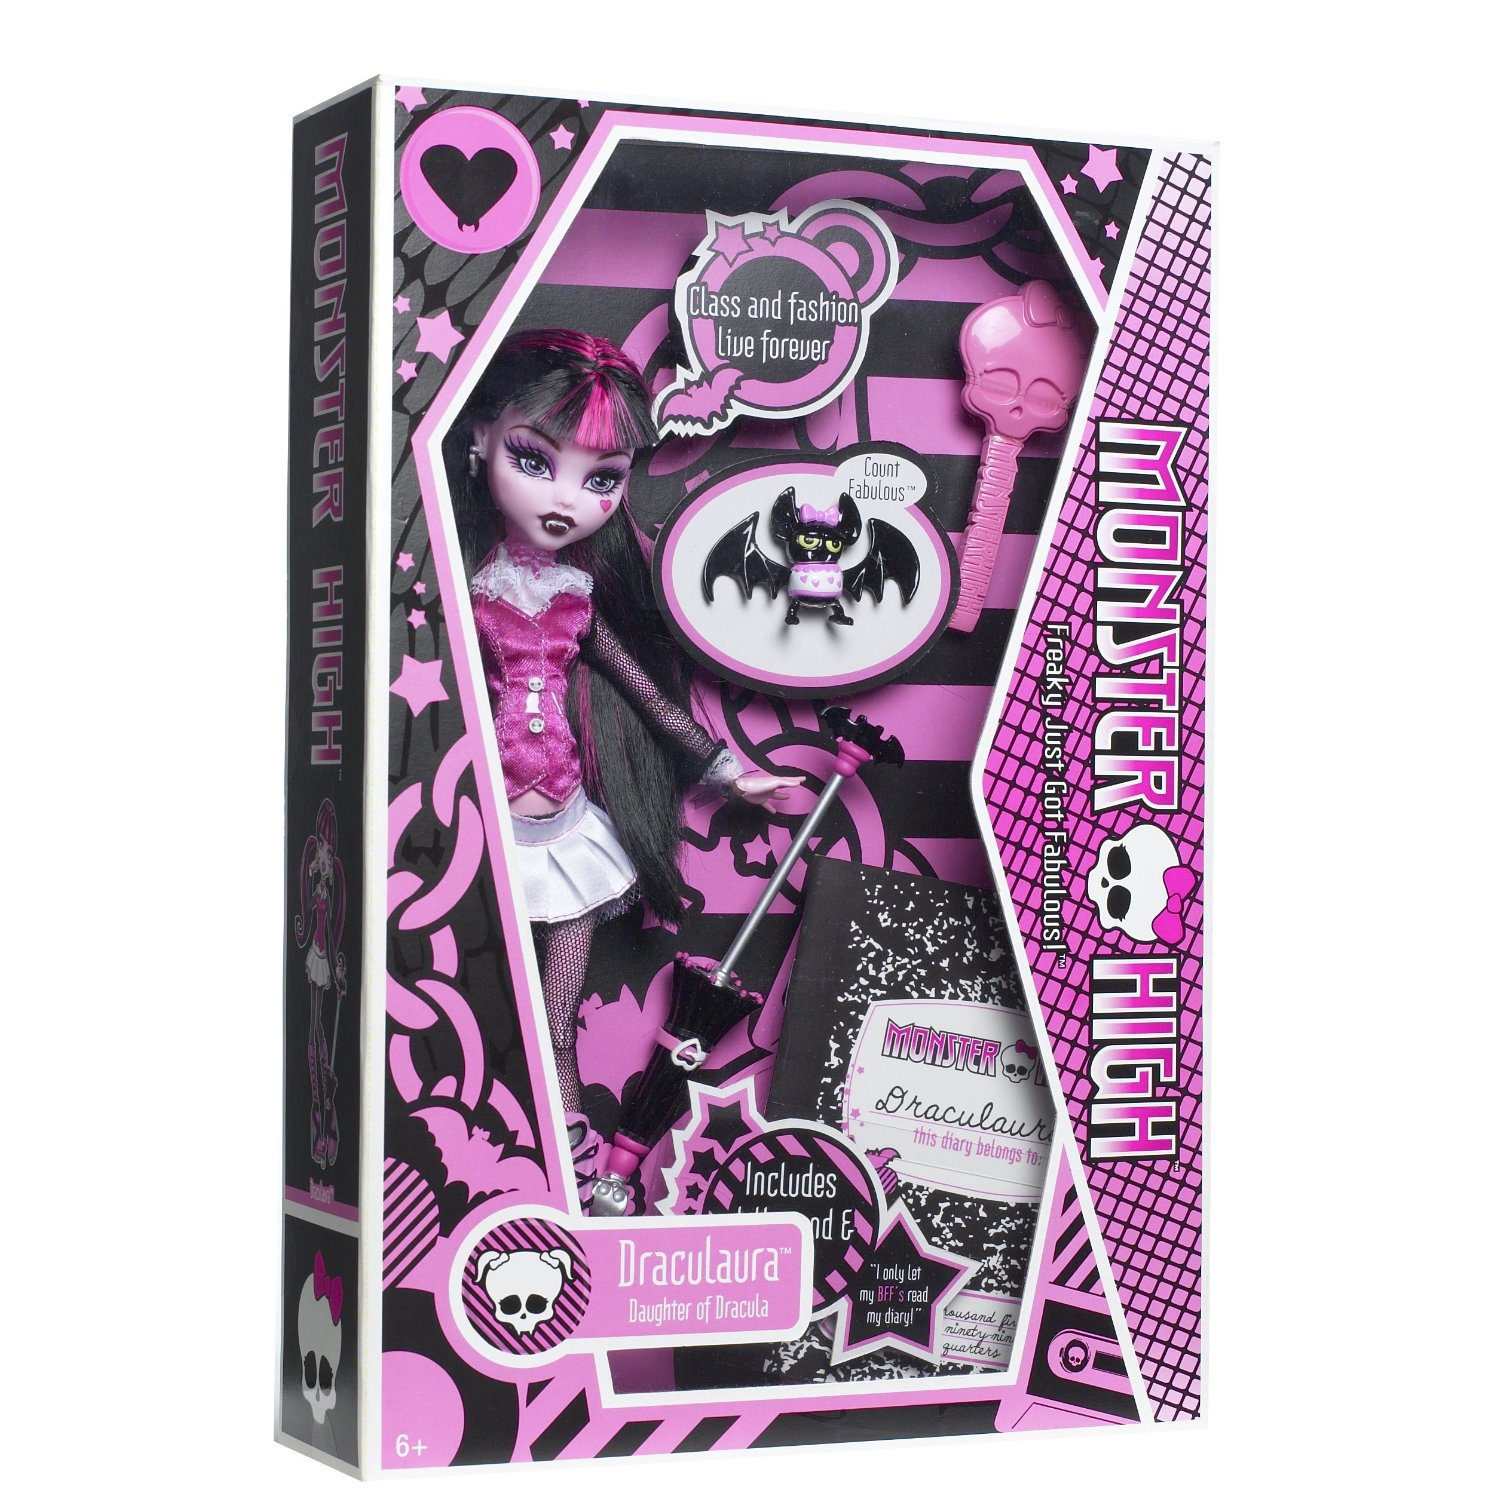 Monster High Libros Libros Y Juguetes 1demagiaxfa Juguetes Monster High